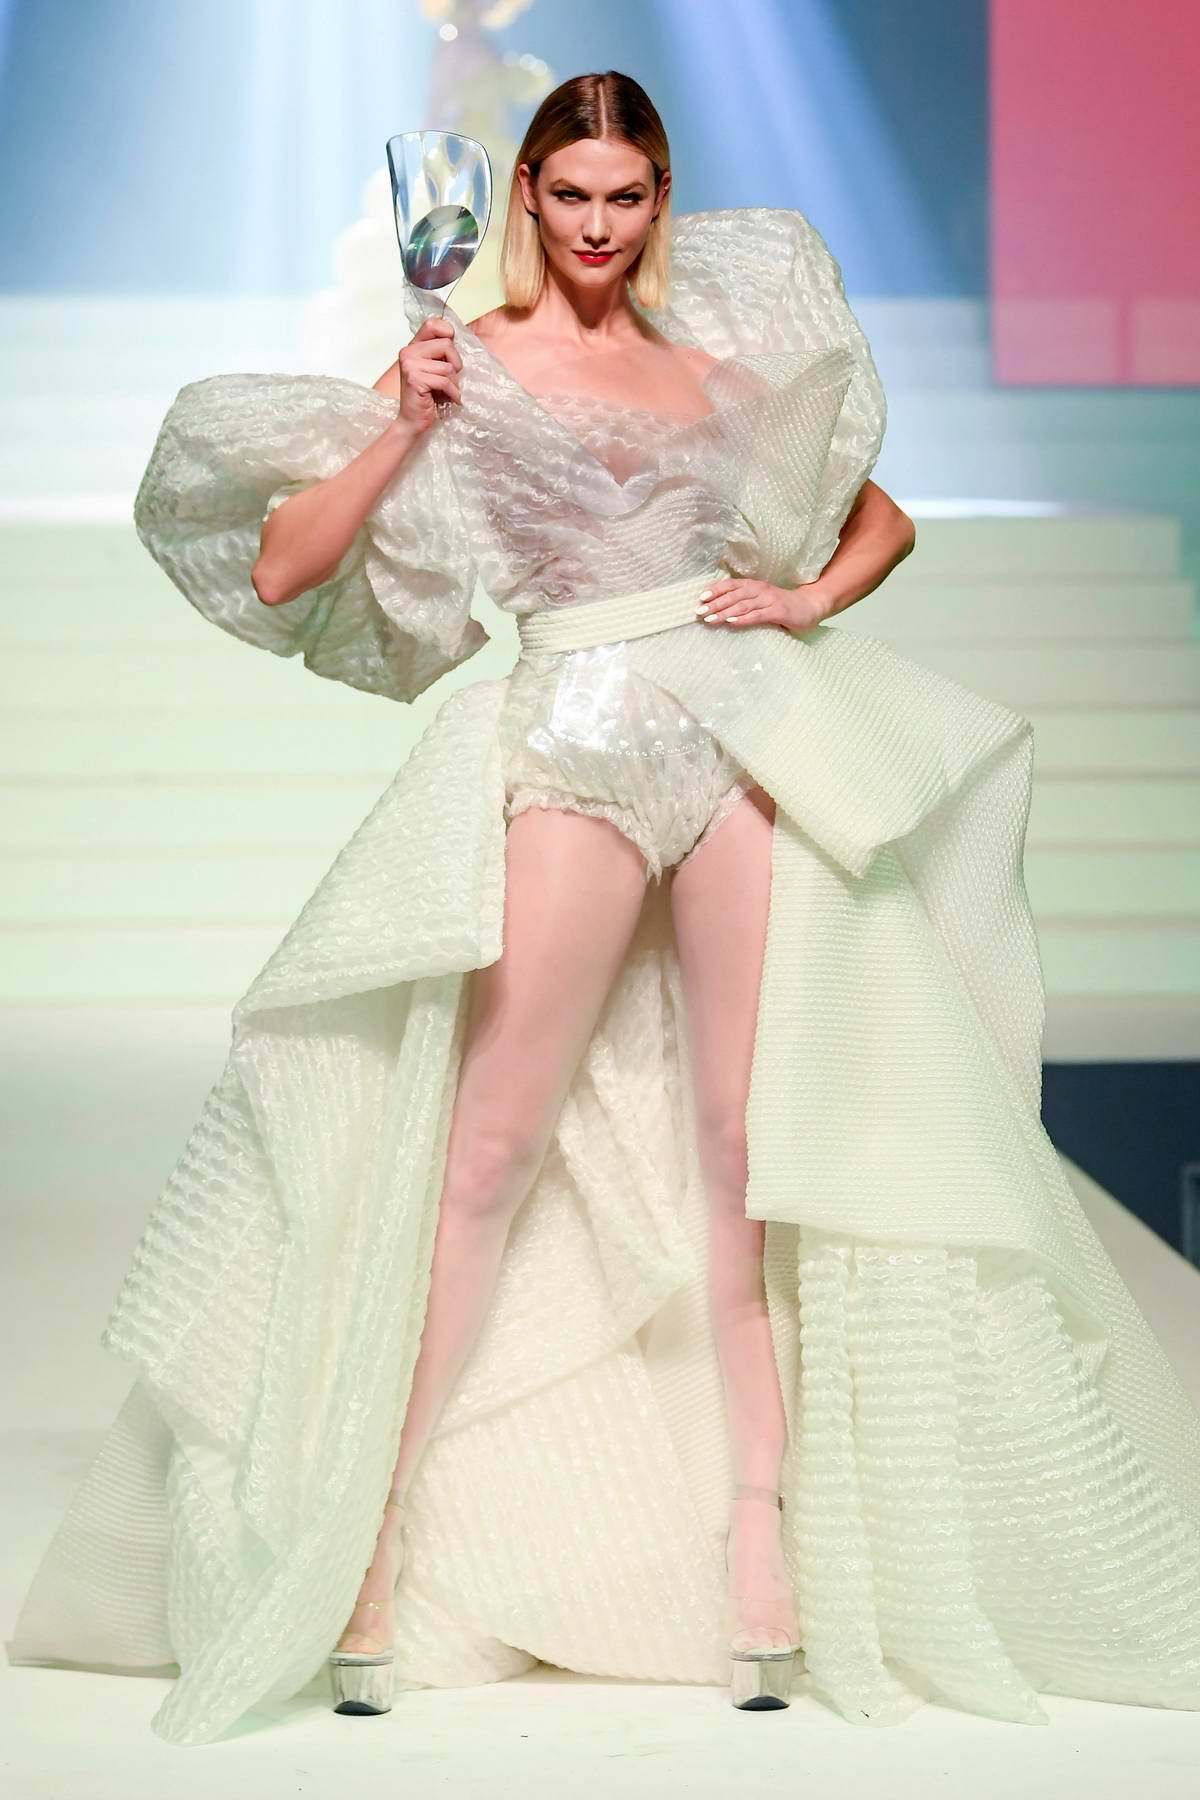 Karlie Kloss walks the runway during the Jean-Paul Gaultier Haute Couture Spring/Summer 2020 show in Paris, France